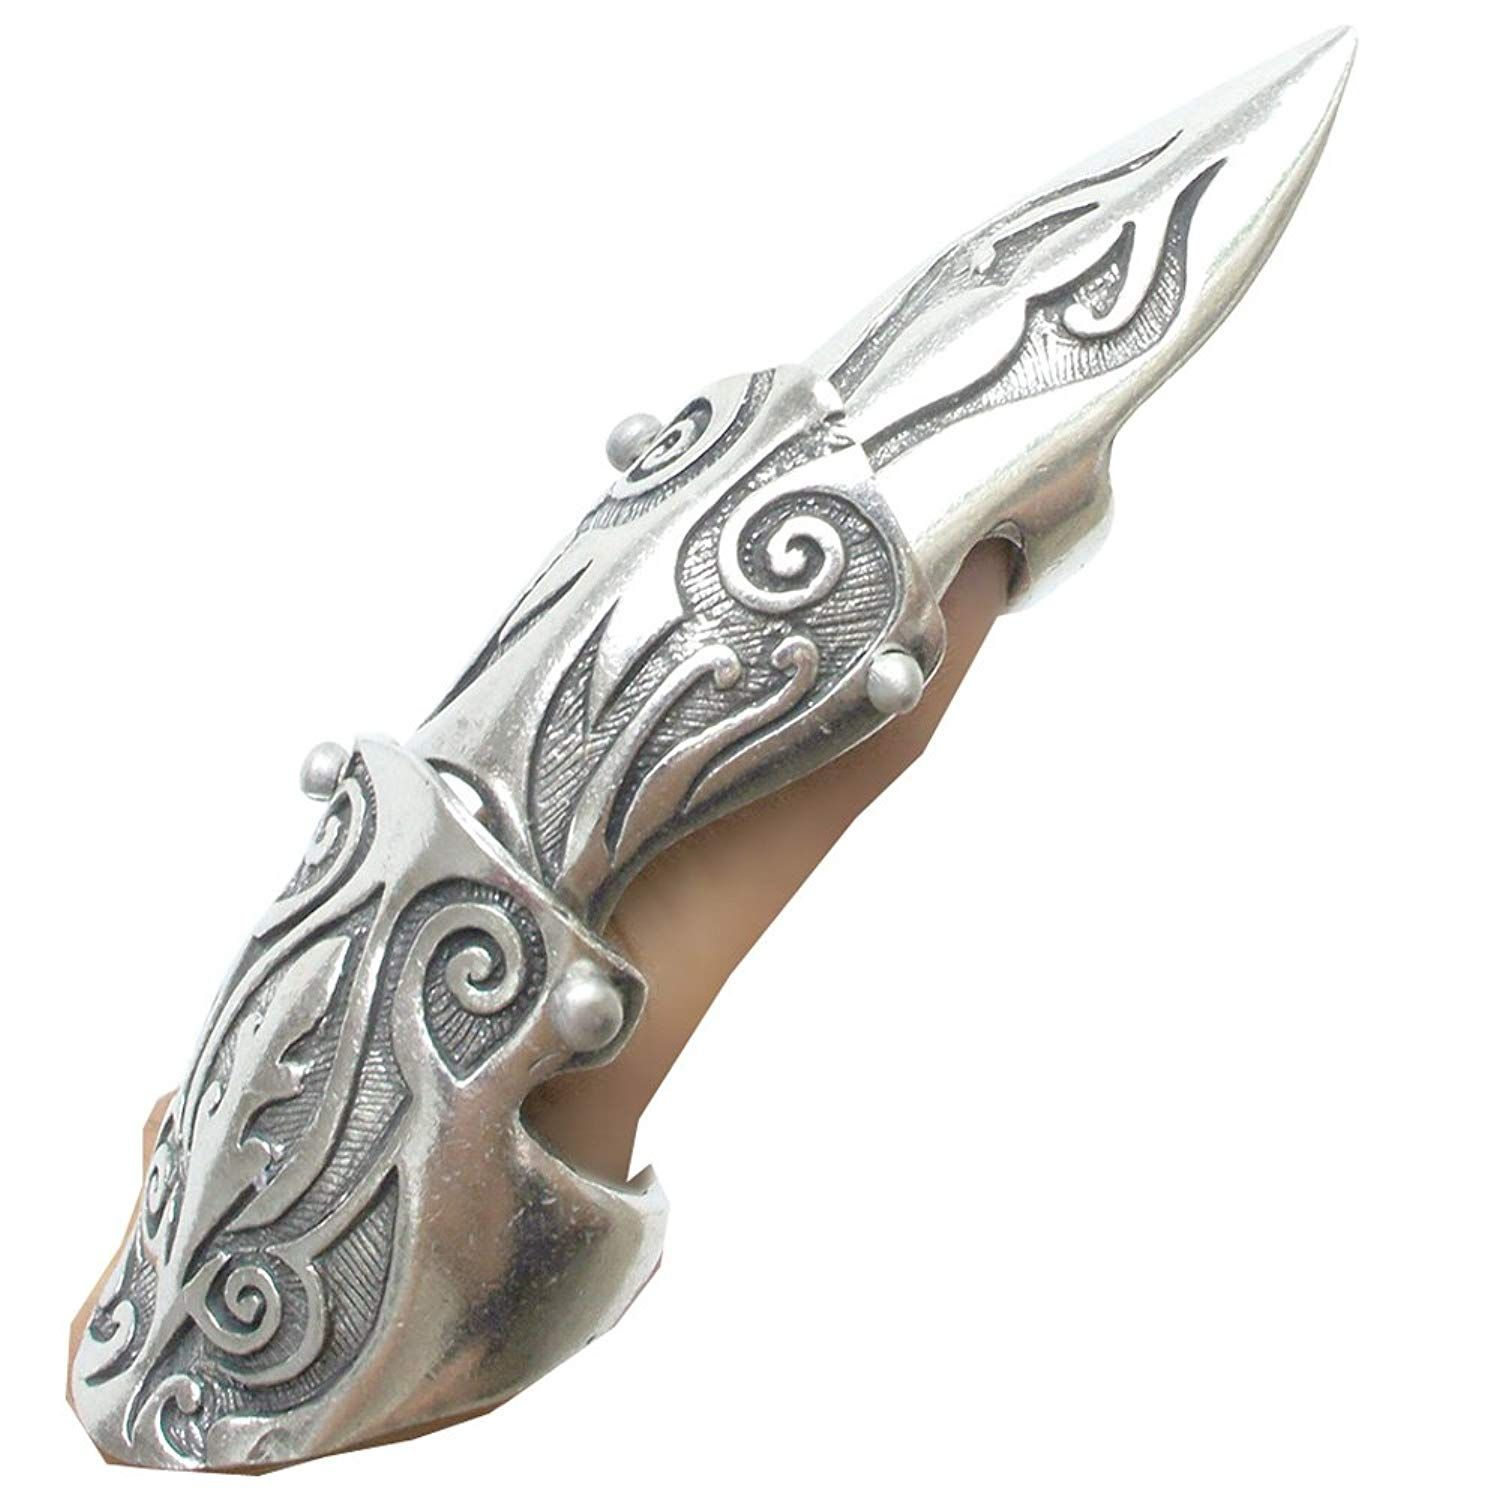 OhDeal4U Full Finger Armor Ring Silver Pewter Metal Punk Gothic Various Styles